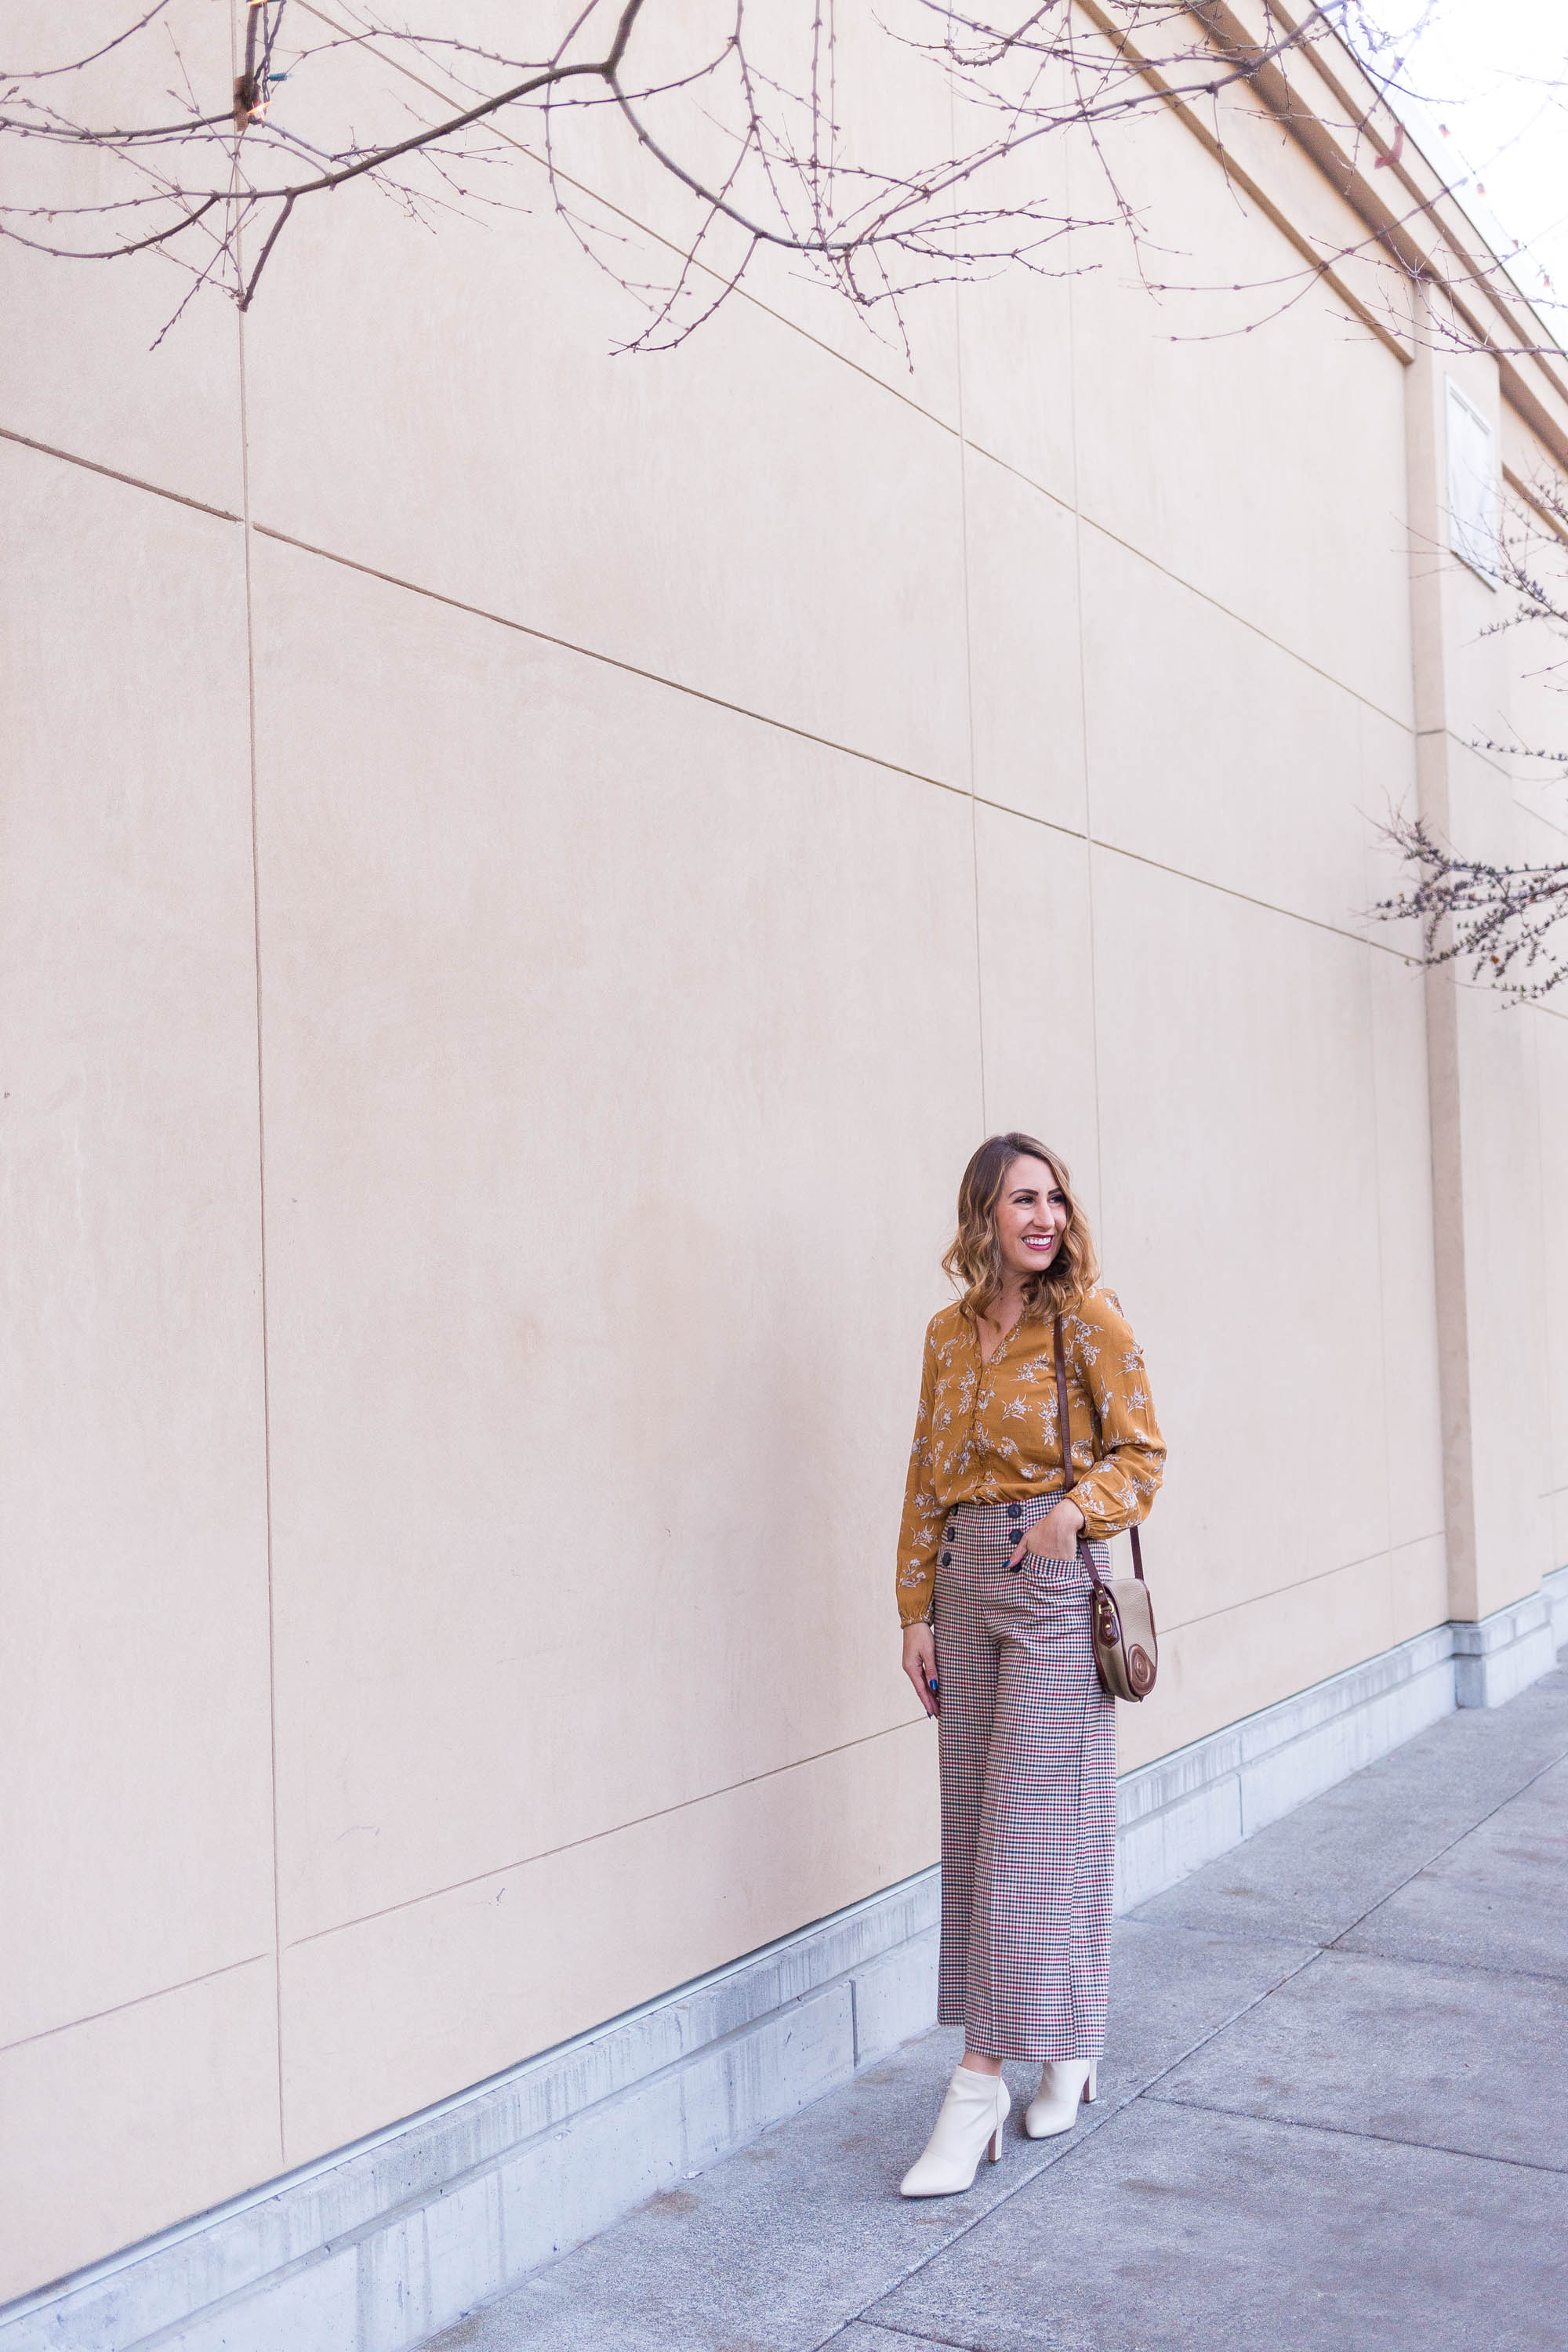 dailylook review, fashion blogger, diary of this girl megan